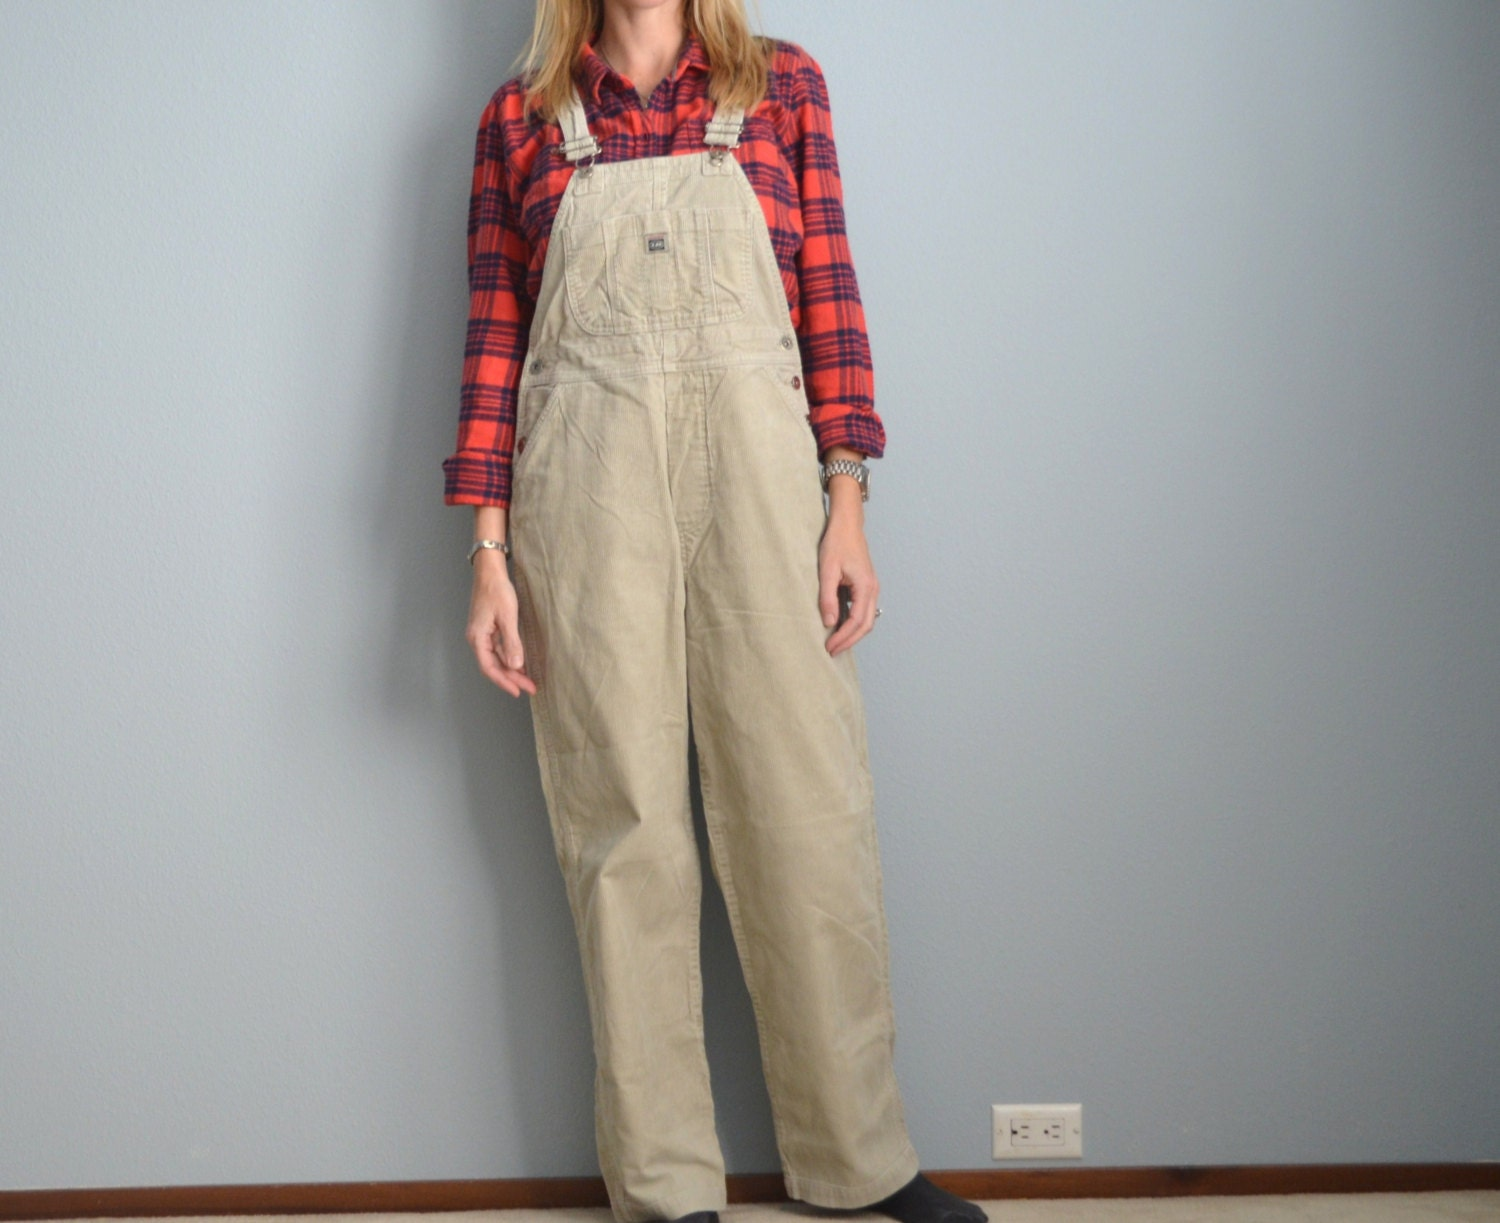 Unionbay Corduroy Cargo Olive Green Pants- 98% Cotton, 2% Spandex- Legs And Back Pockets- 32' Waist, 8 Rise, 31 Inseam91p.